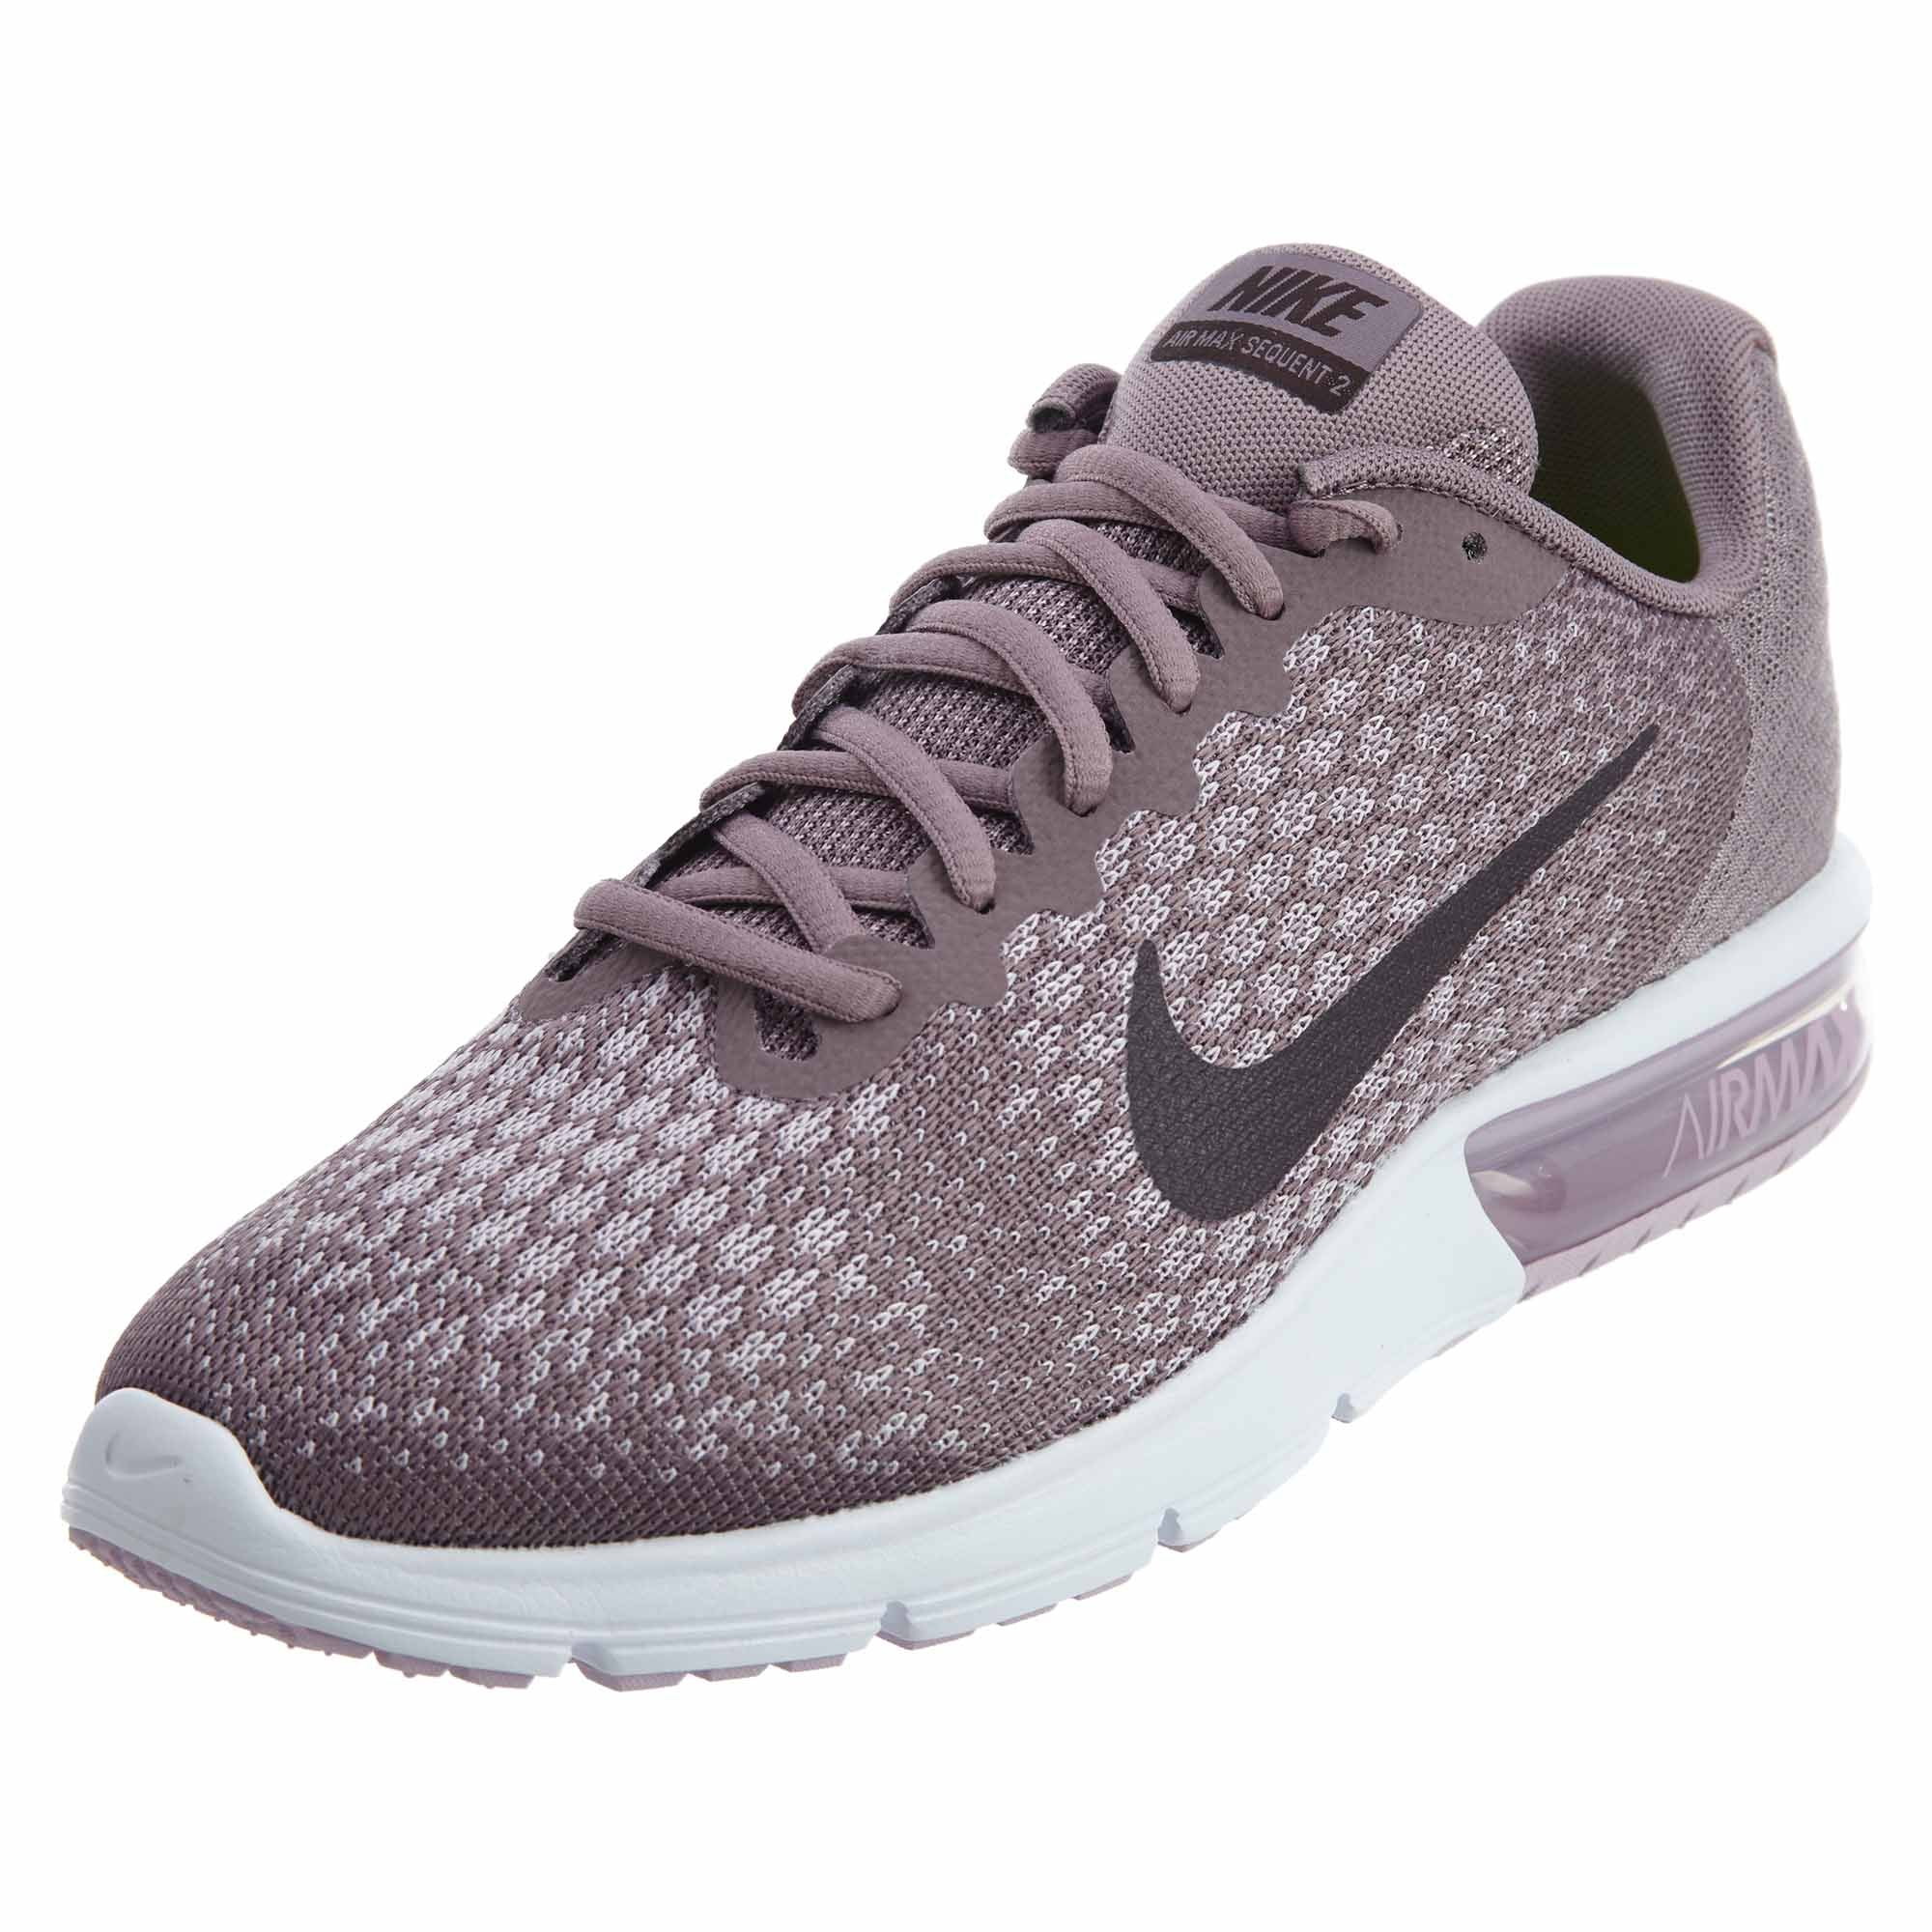 separation shoes a3ed0 b4ae0 Nike Air Max Sequent 2 Womens Style  852465